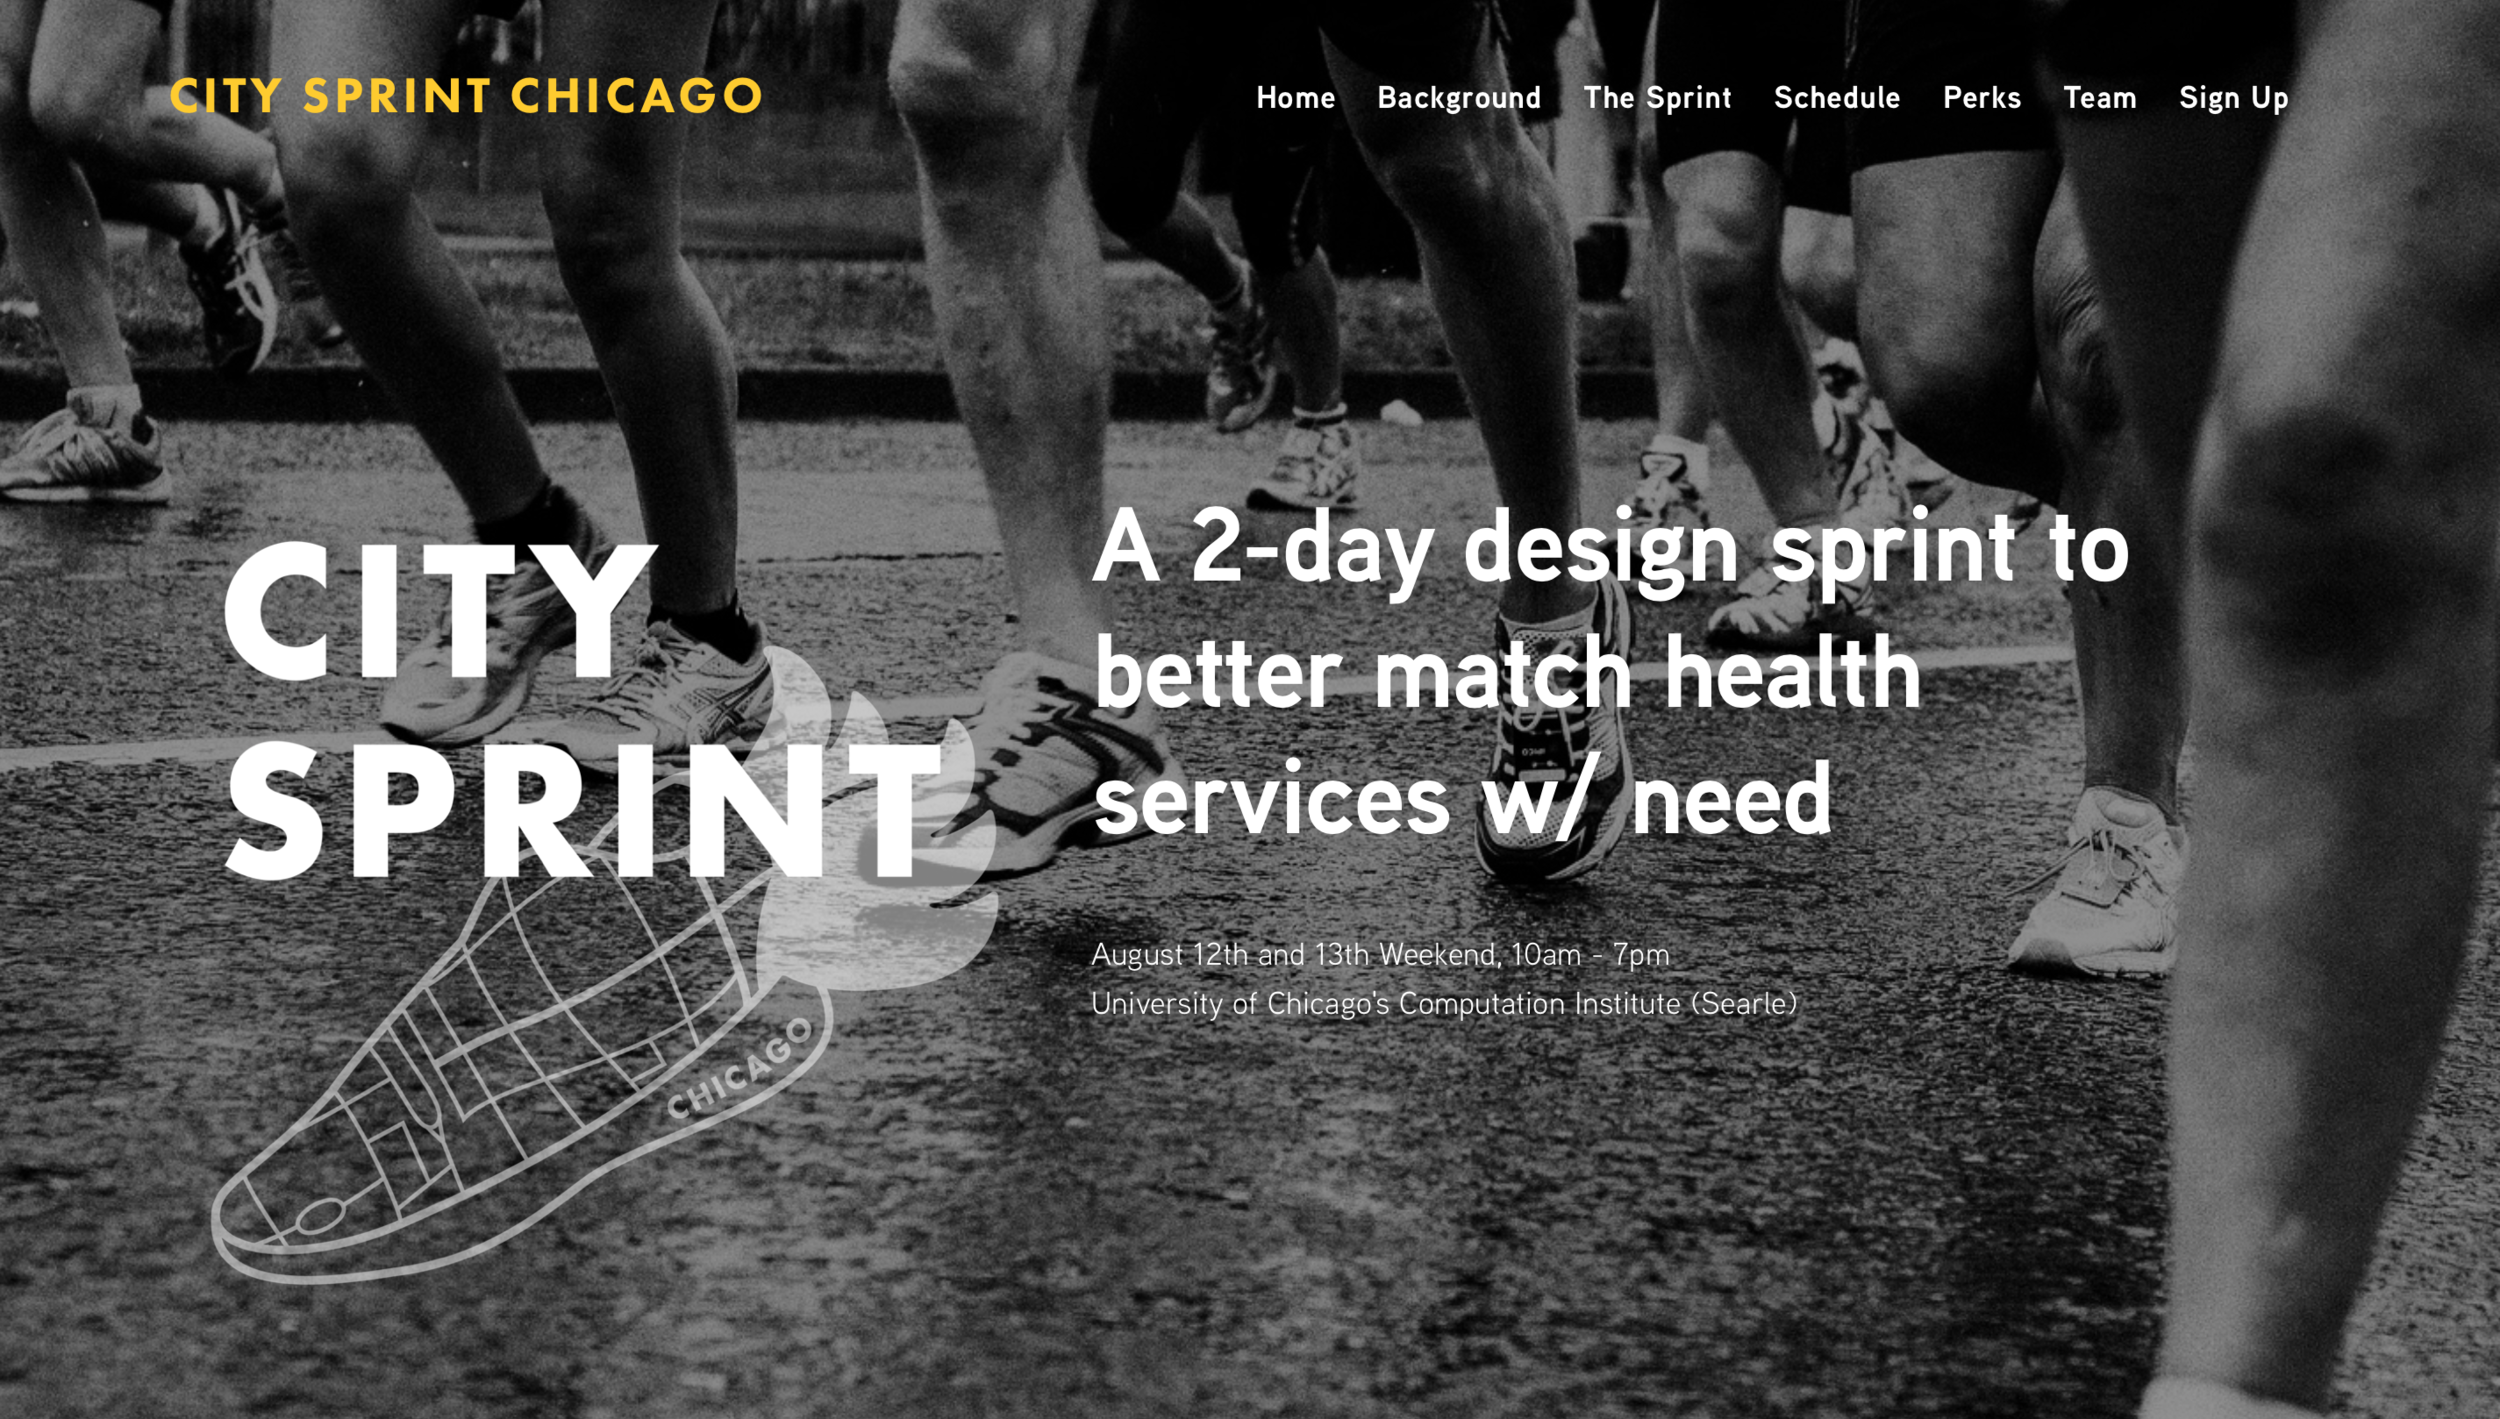 Proud as a Chicago resident, I joined City Sprint to explore public funding and data to help City of Chicago's human service program. - Learn our lean research process